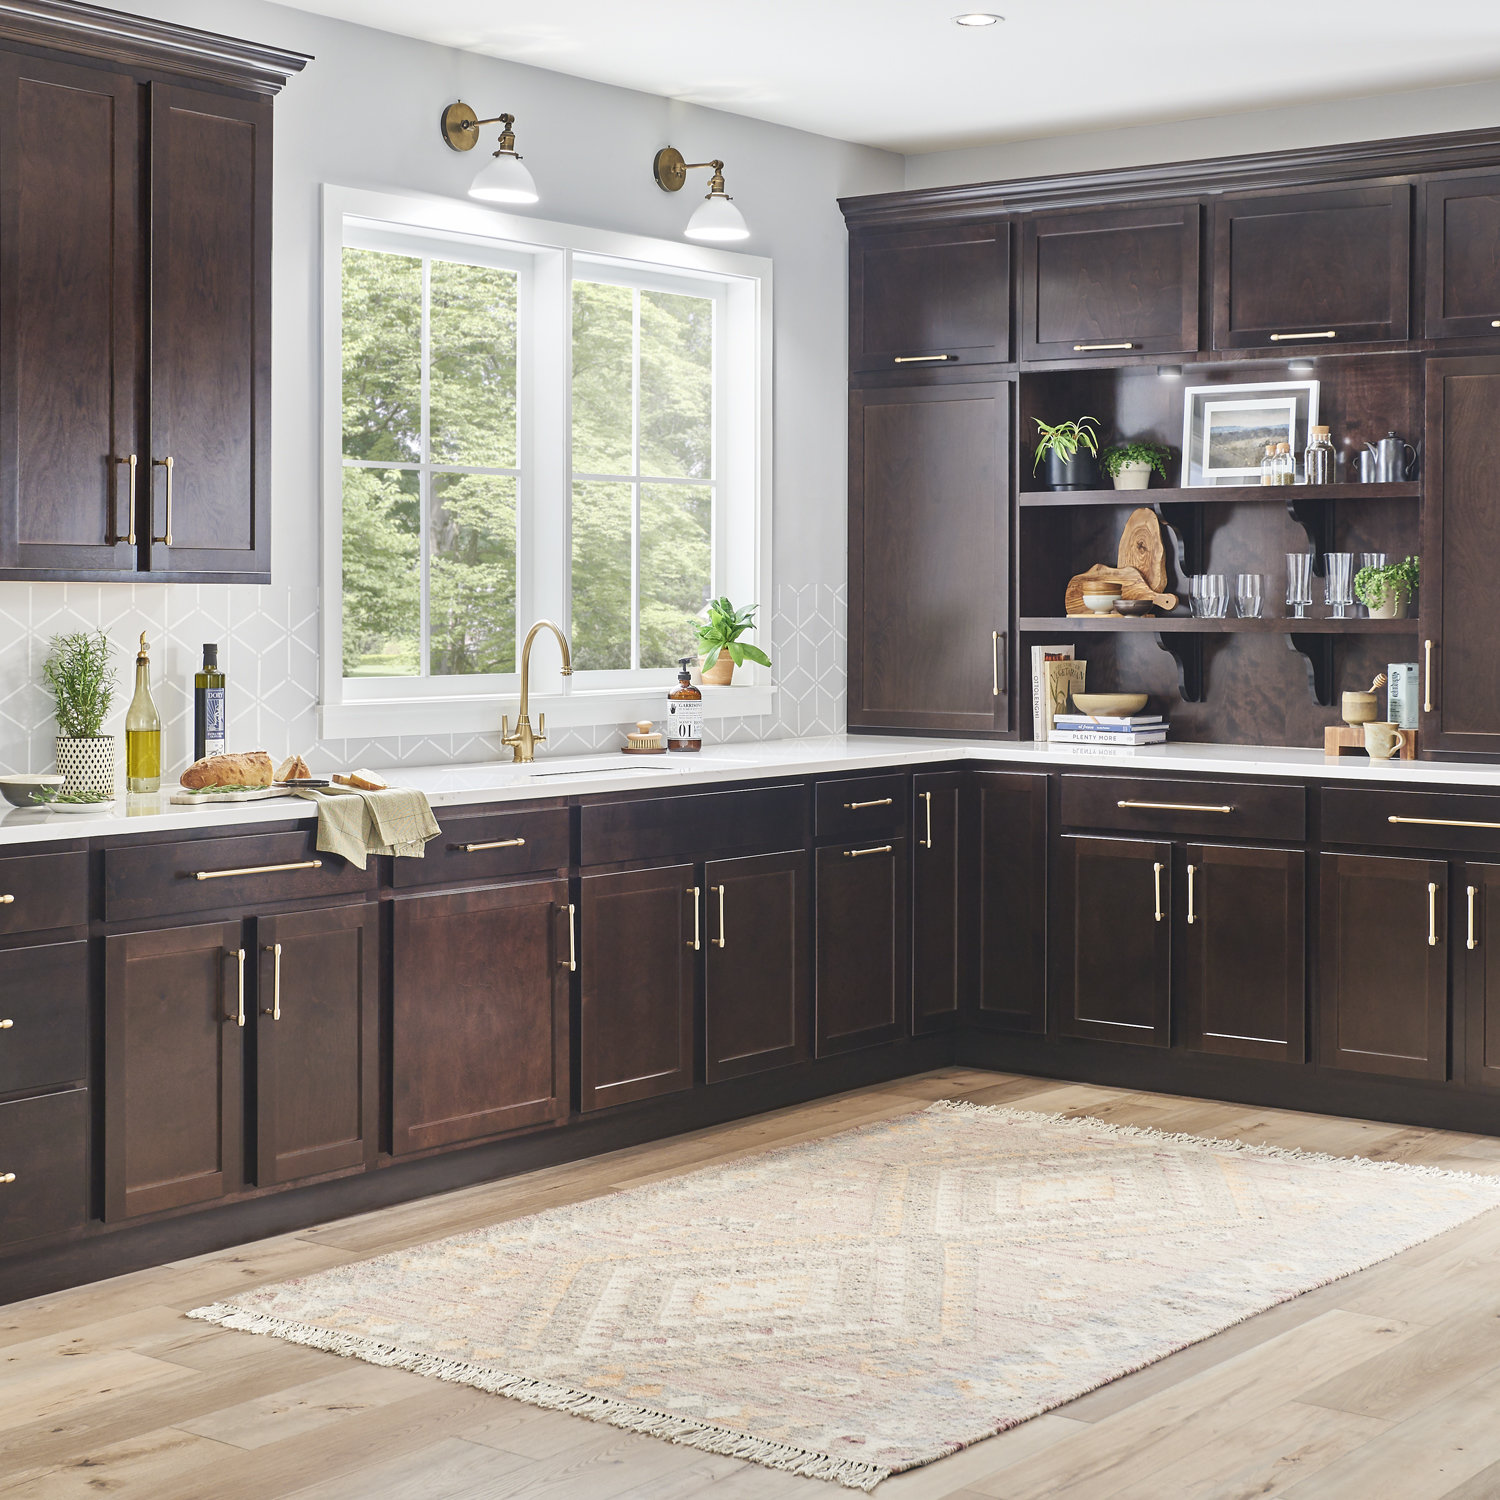 Builders Mark™ Cabinets